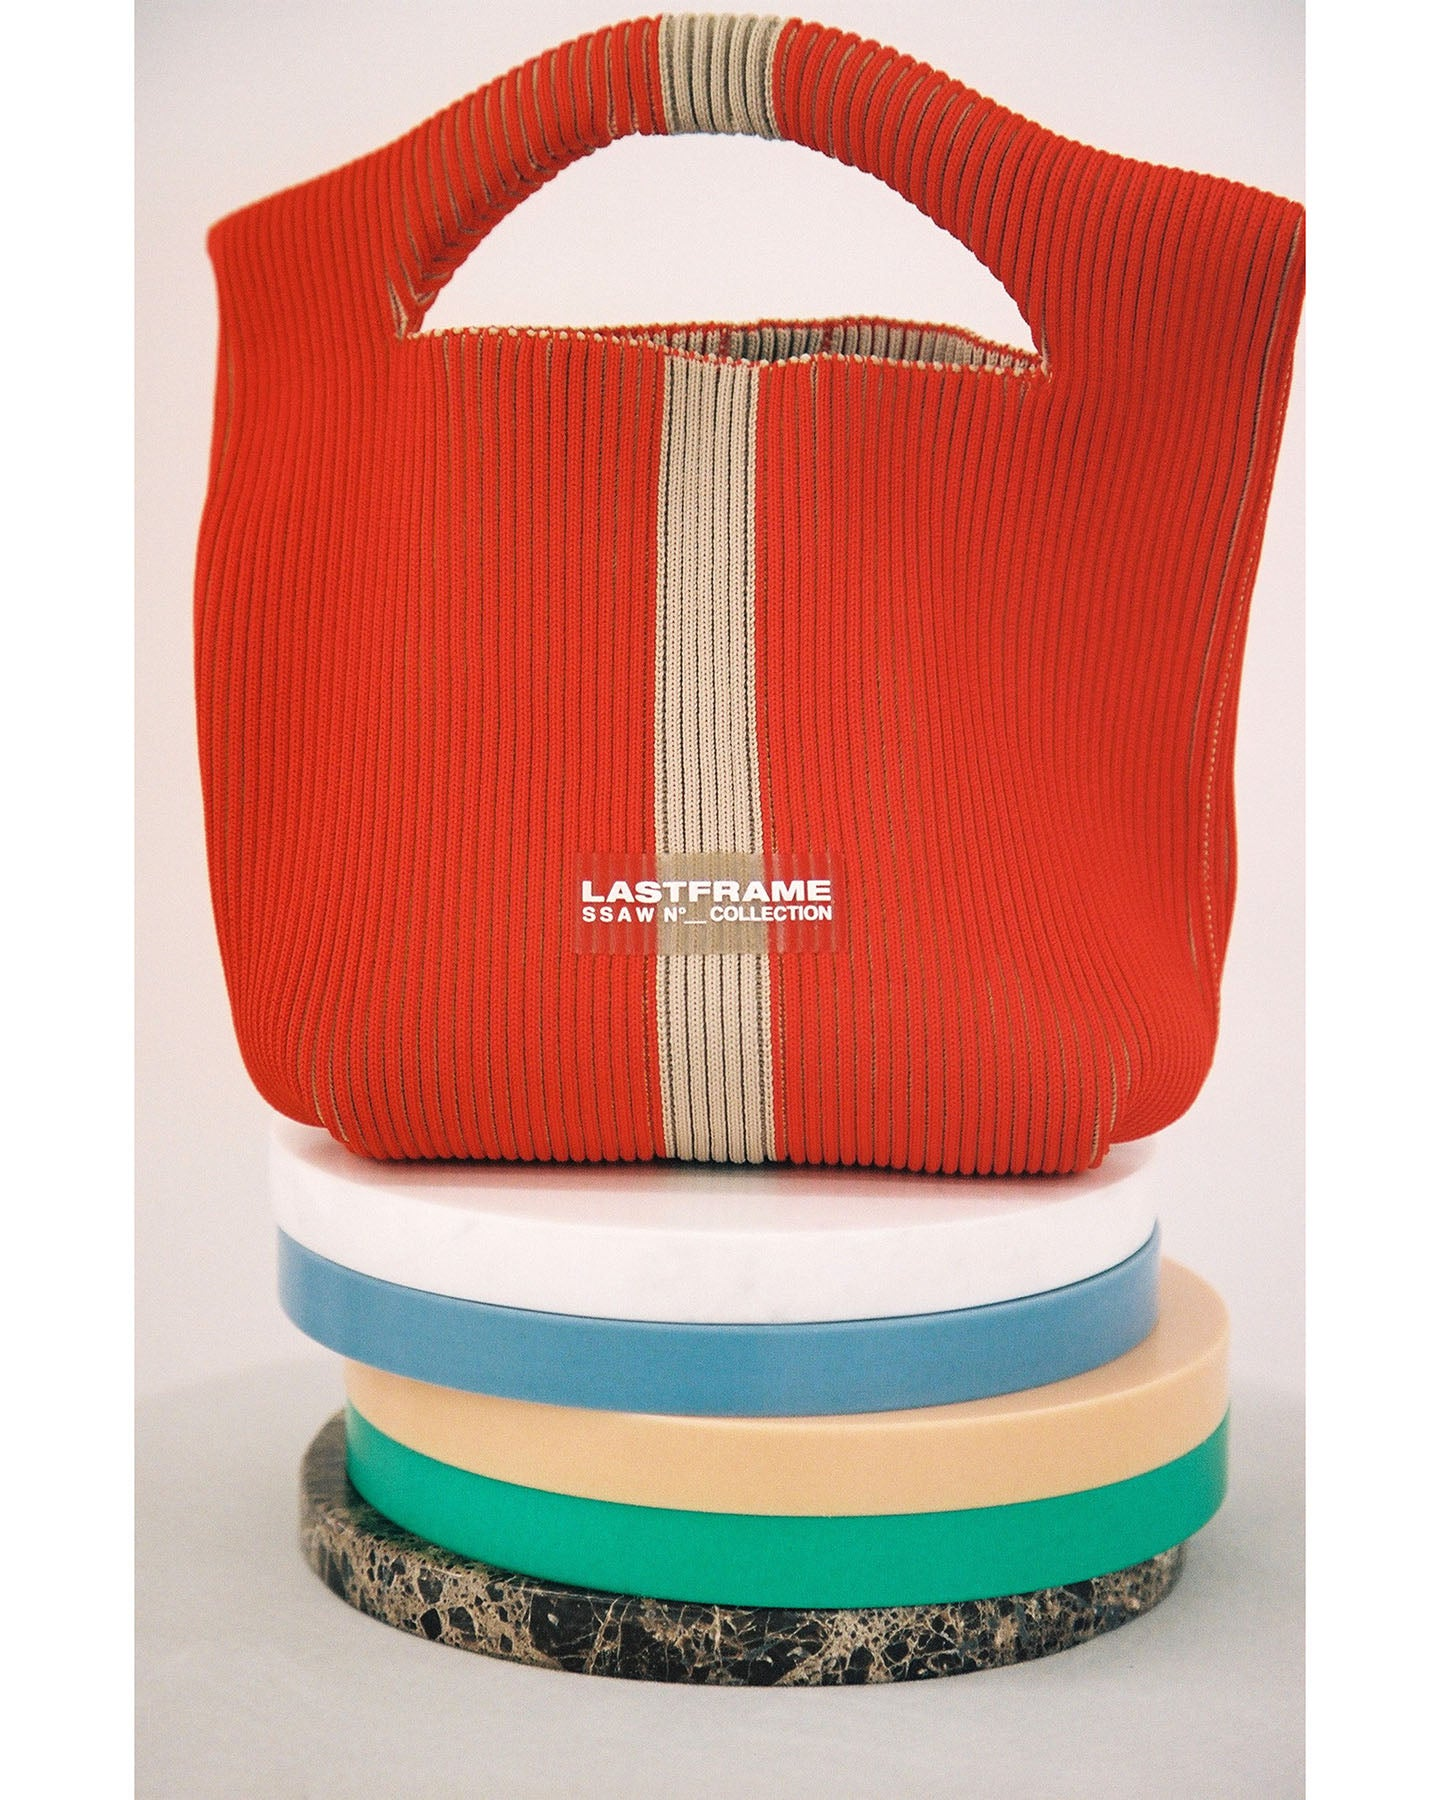 TWO TONE LINE BASKET